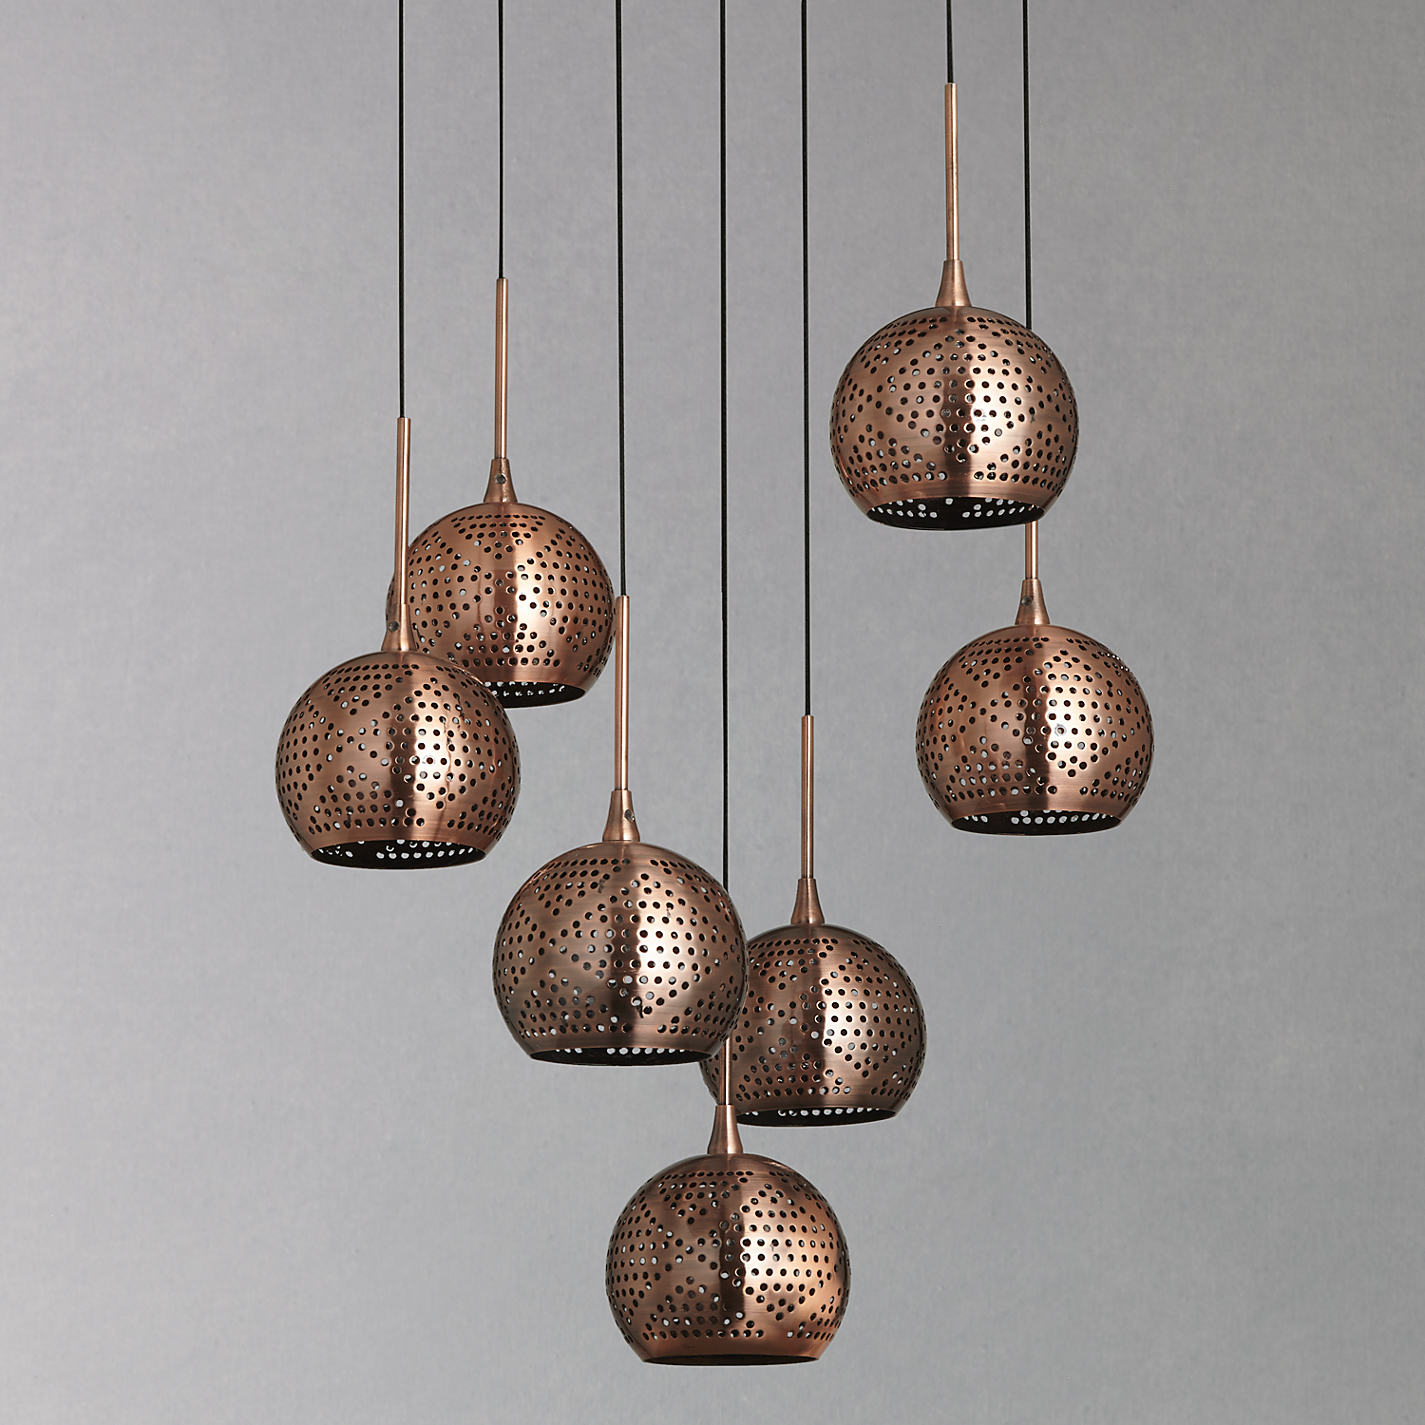 Then Try Out Our Copper Ceiling Lights. These Hanging Designer Lights Do  Make A Statement On Their Own!